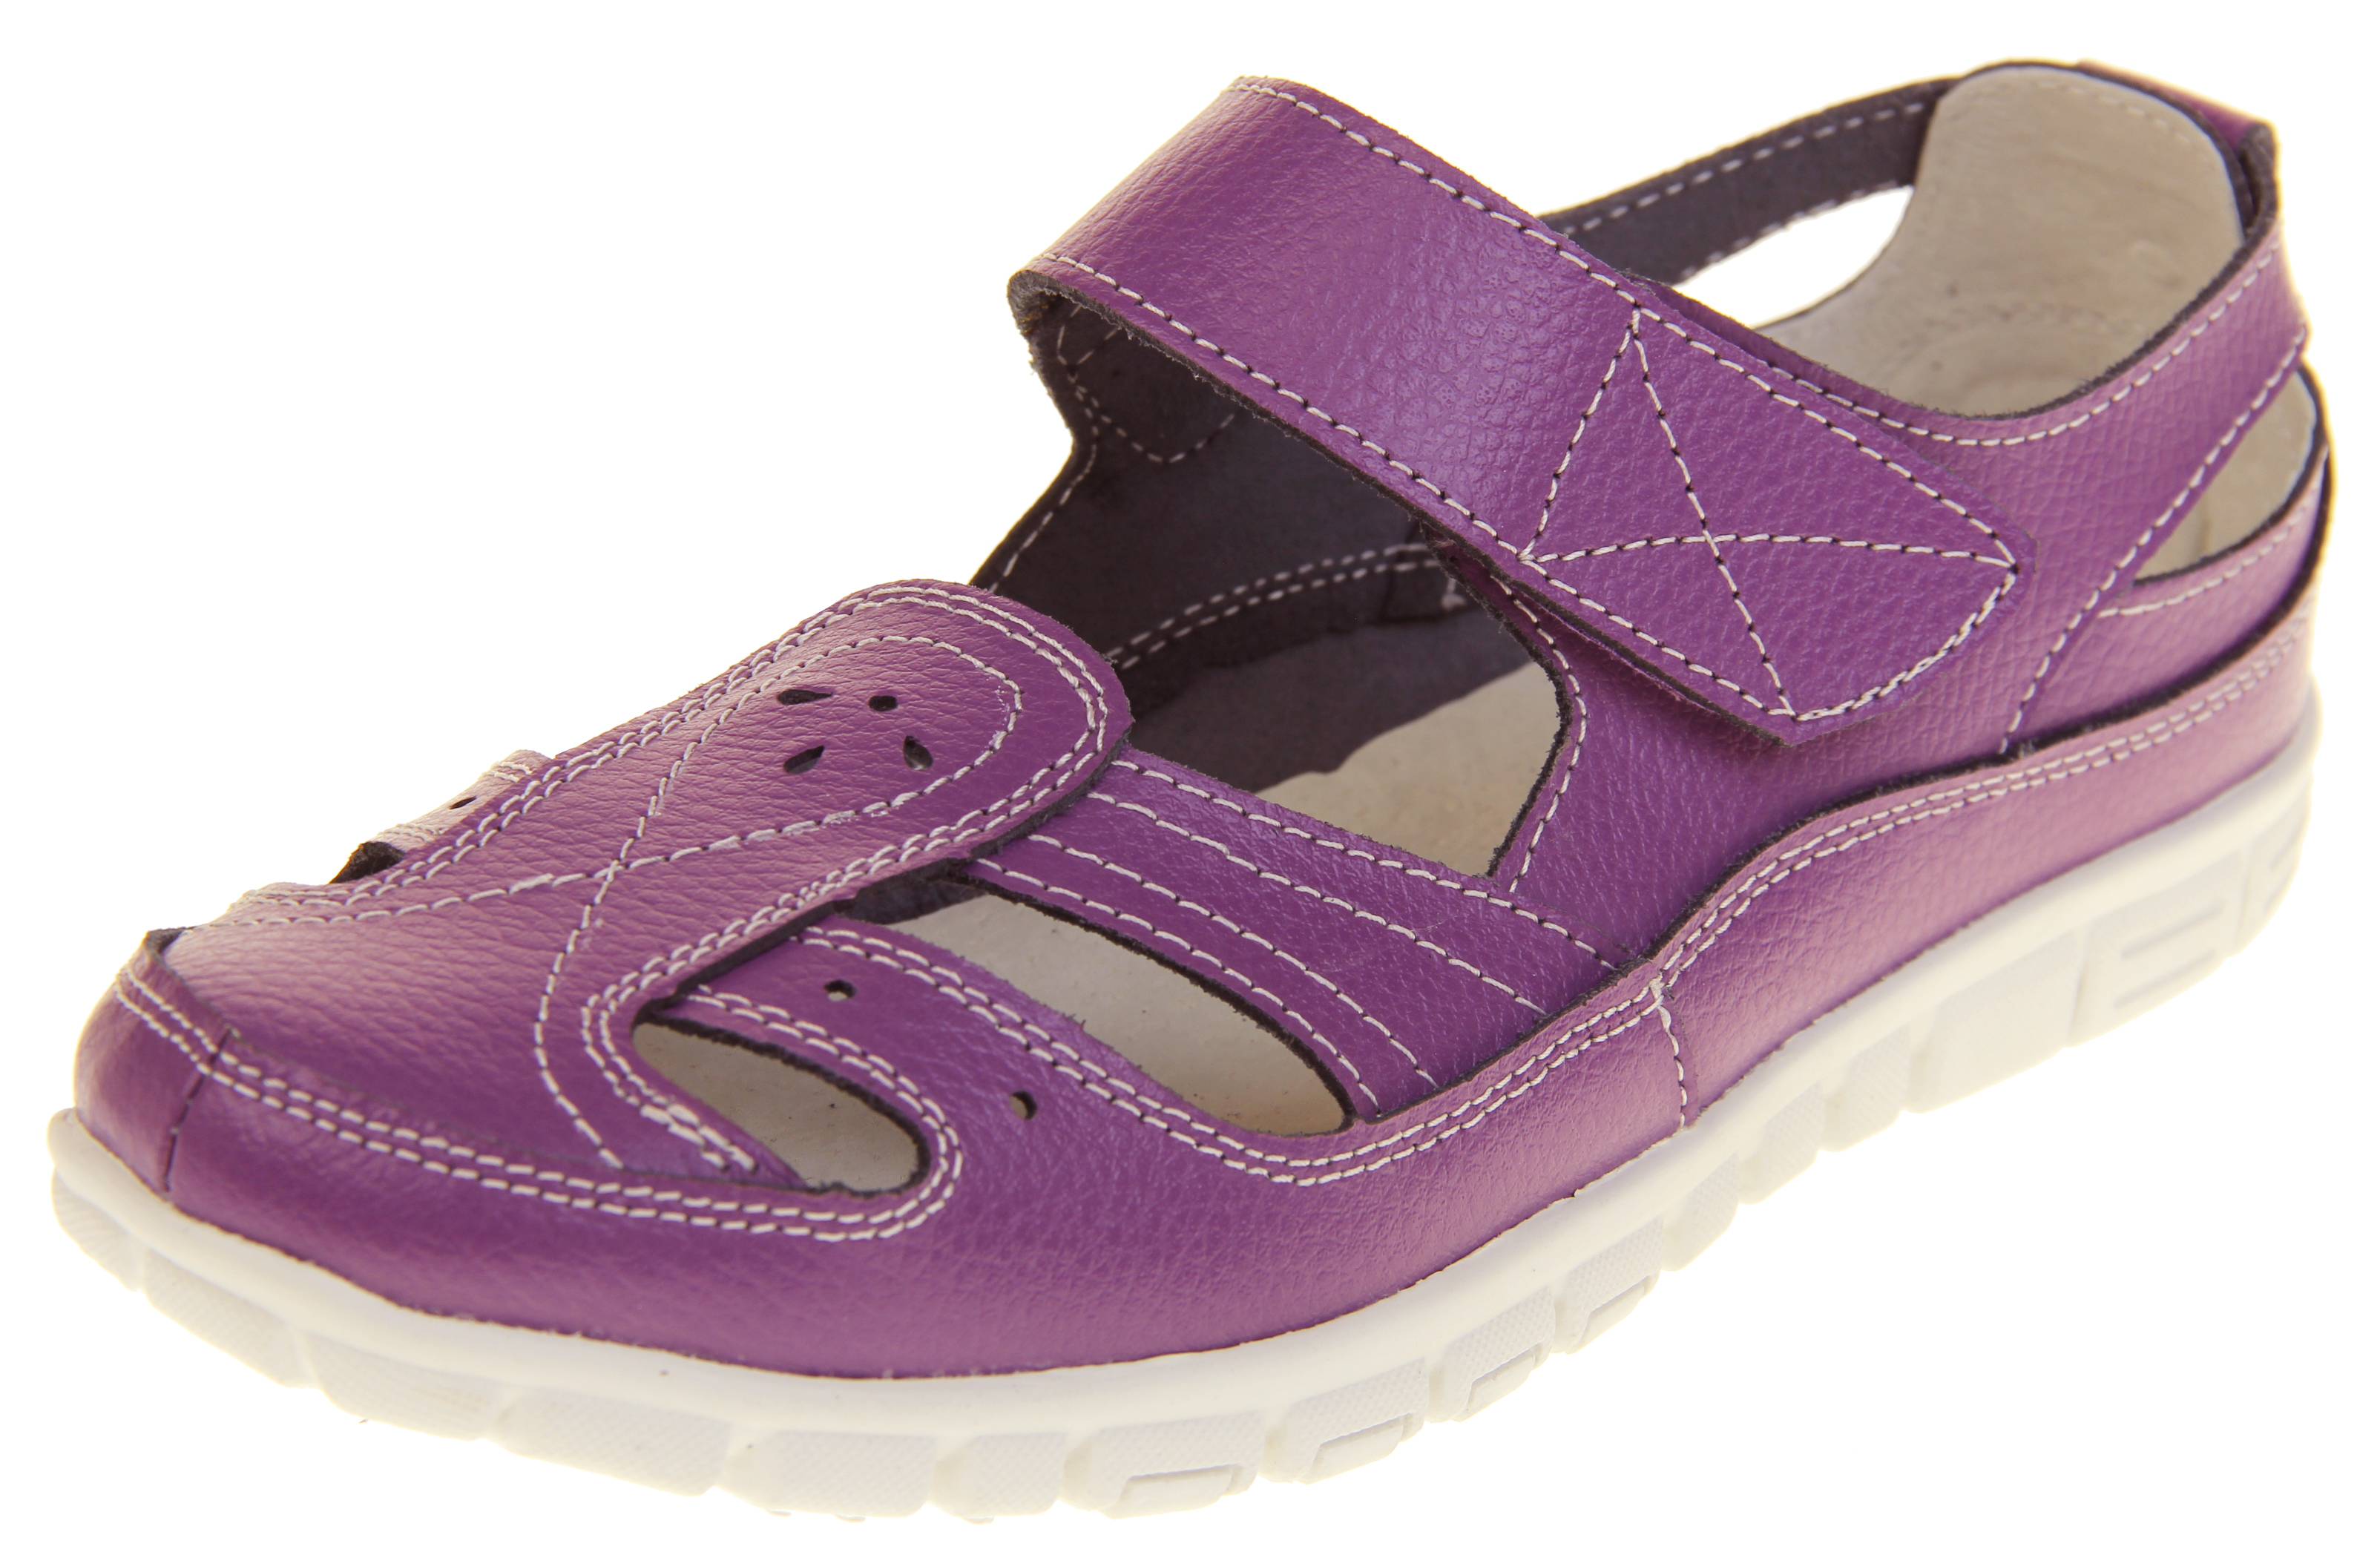 b6f70b4d40970 Womens Wide Fit EEE Leather Mary Jane Shoes | Womens, Mens, Kids Shoes |  Heels, Trainers & Boots | Footwear Studio